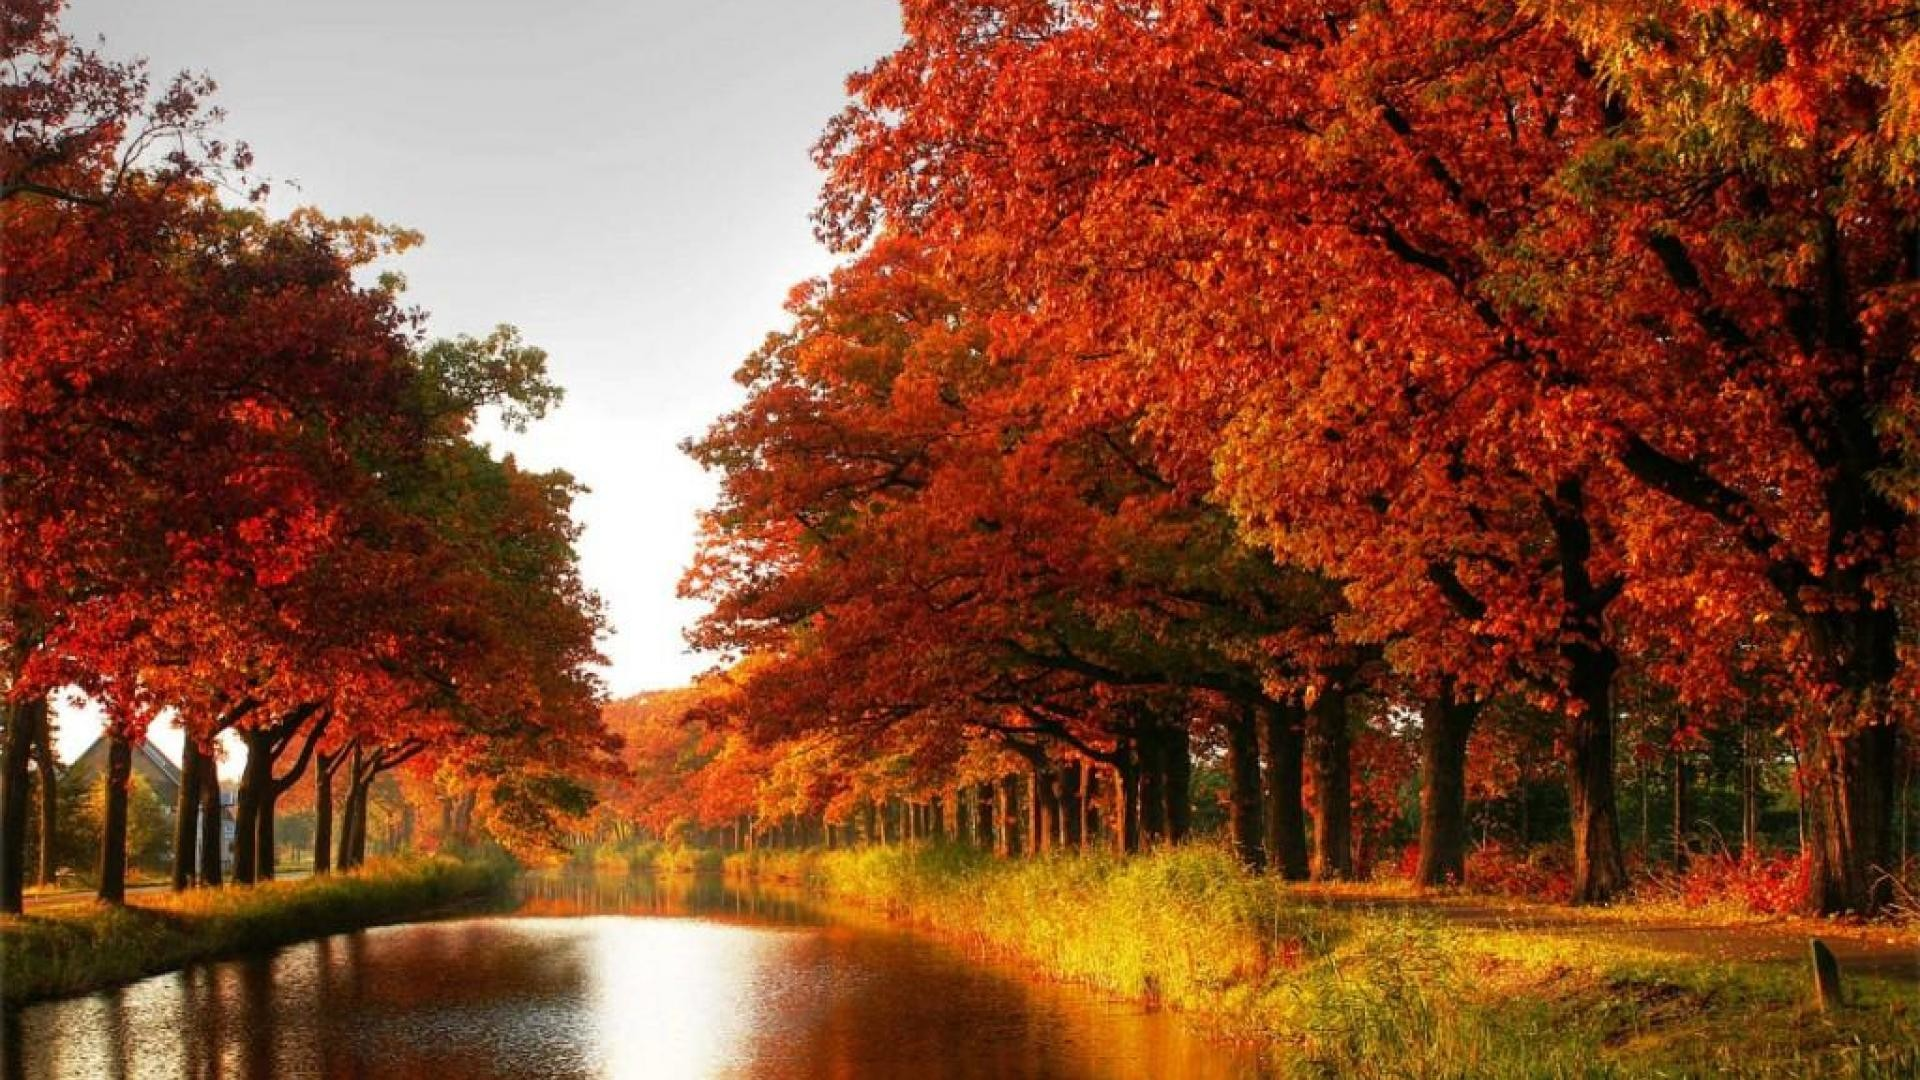 Maple trees autumn red leaves canal river forest [1920×1080] Need #iPhone  #6S #Plus #Wallpaper/ #Background for #IPhone6SPlus? Follow iPhone 6S Plu…